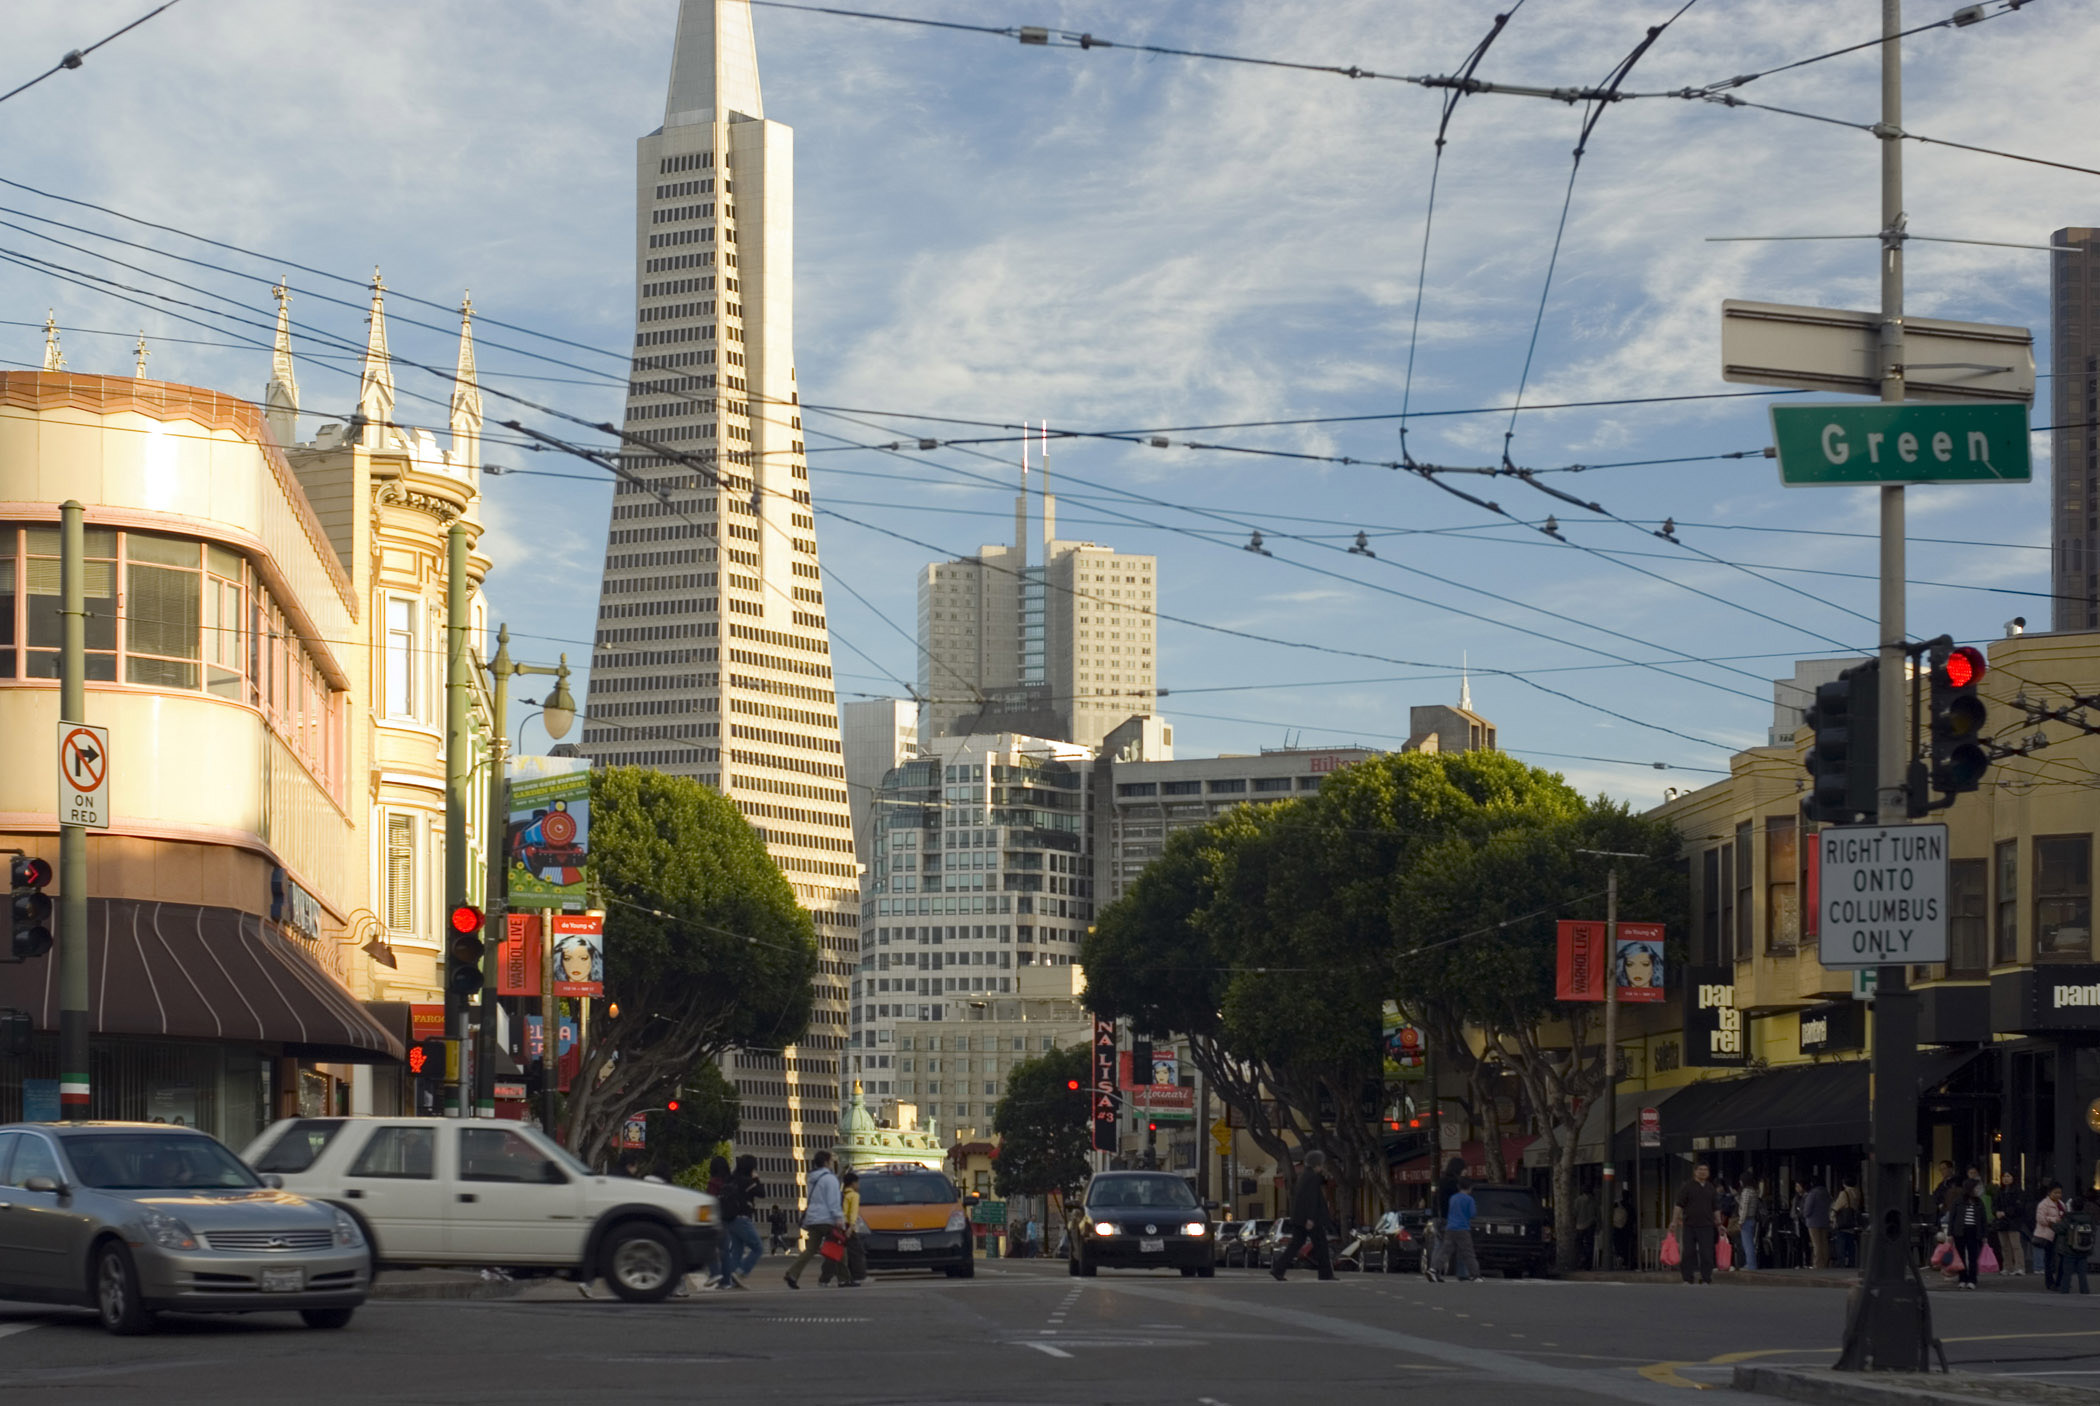 Street level scene of a busy intersection with traffic and pedestrians on Columbus Avenue San Francisco with the Transamerica Pyramid behind